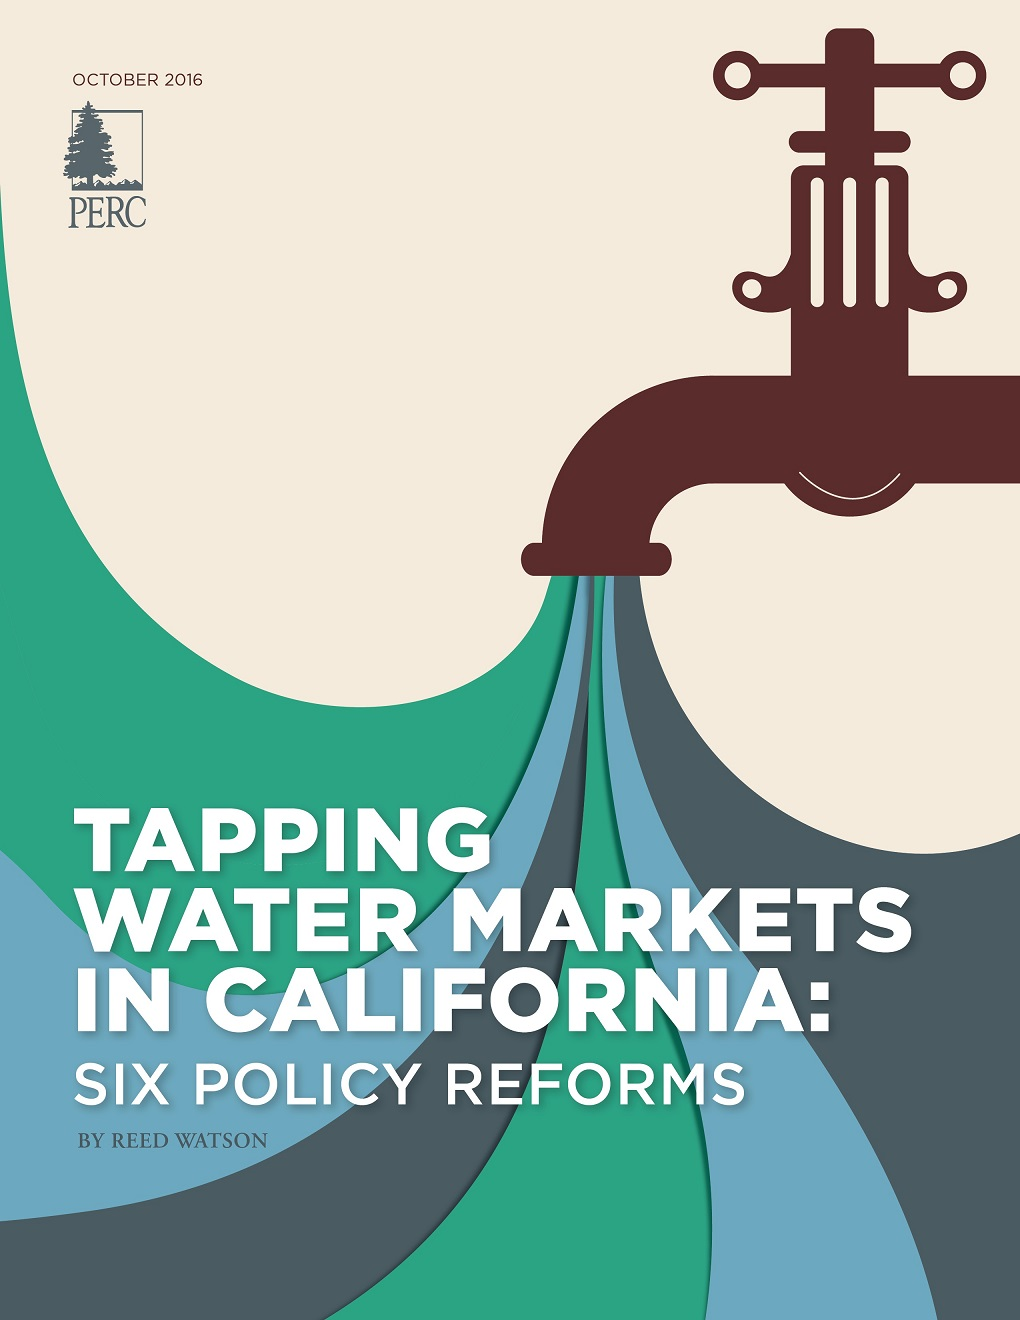 Tapping Water Markets in California: Six Policy Reforms